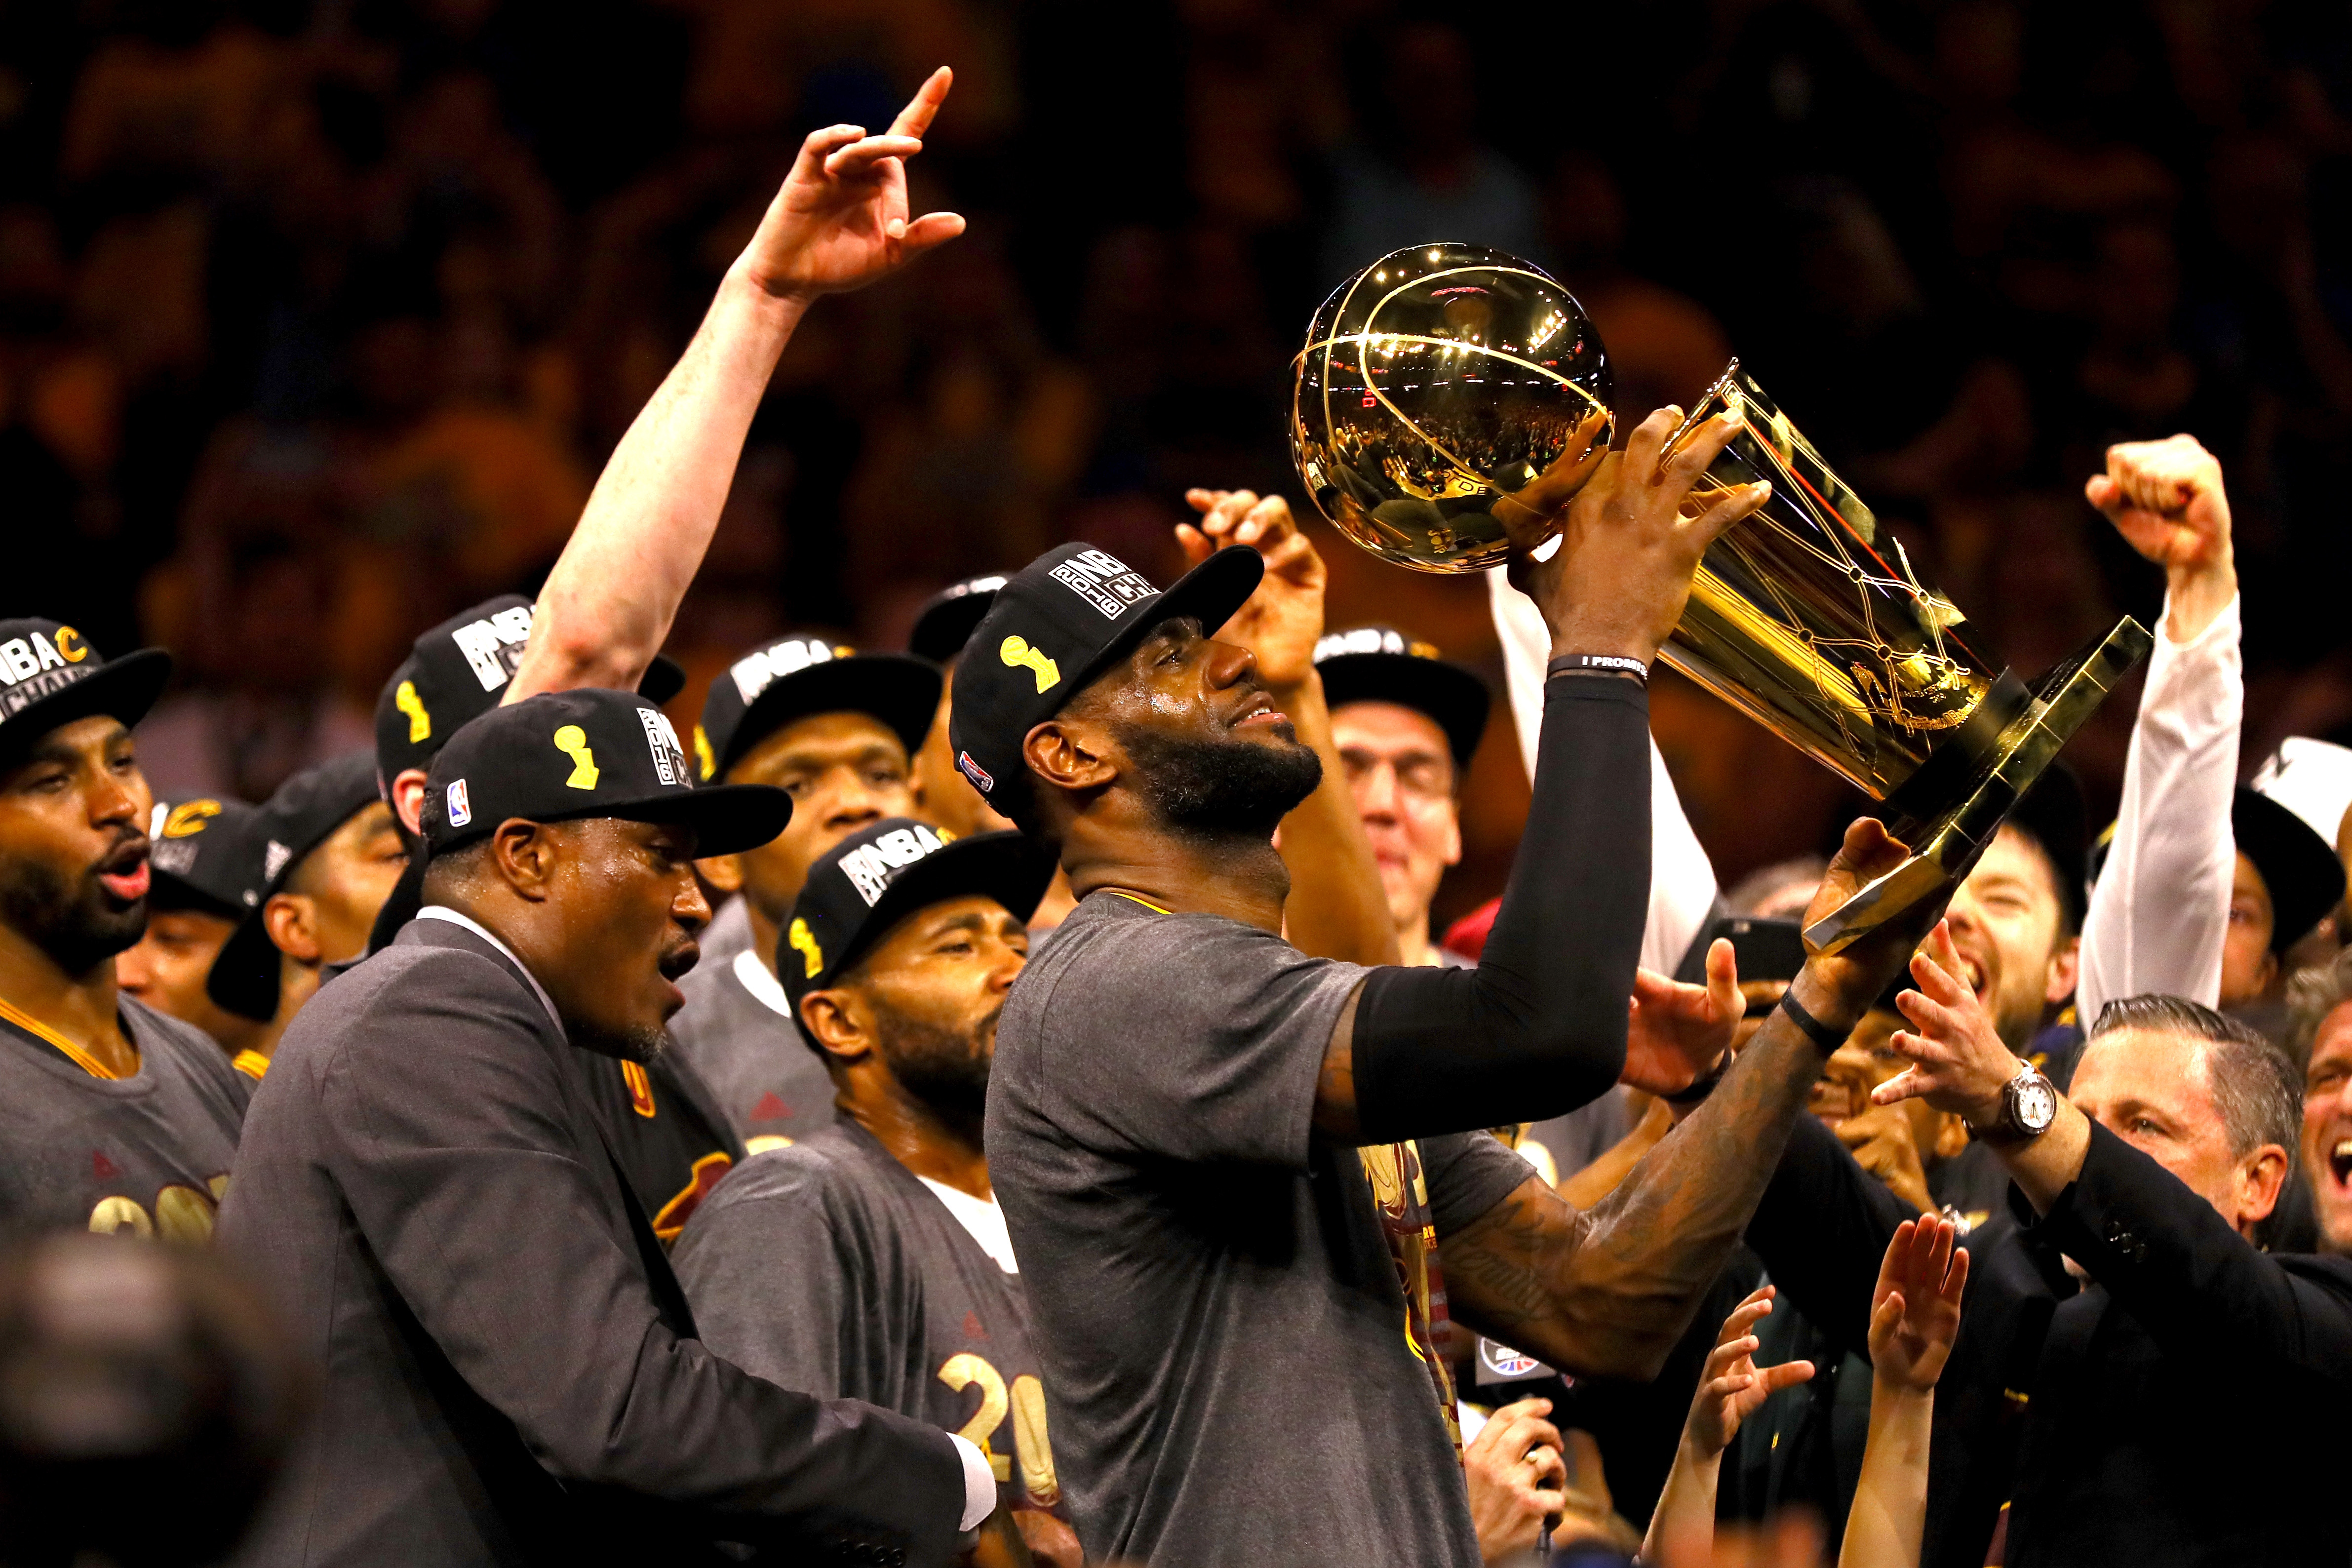 The Cleveland Cavaliers now face the extreme challenge - defending their title. (Getty Images)